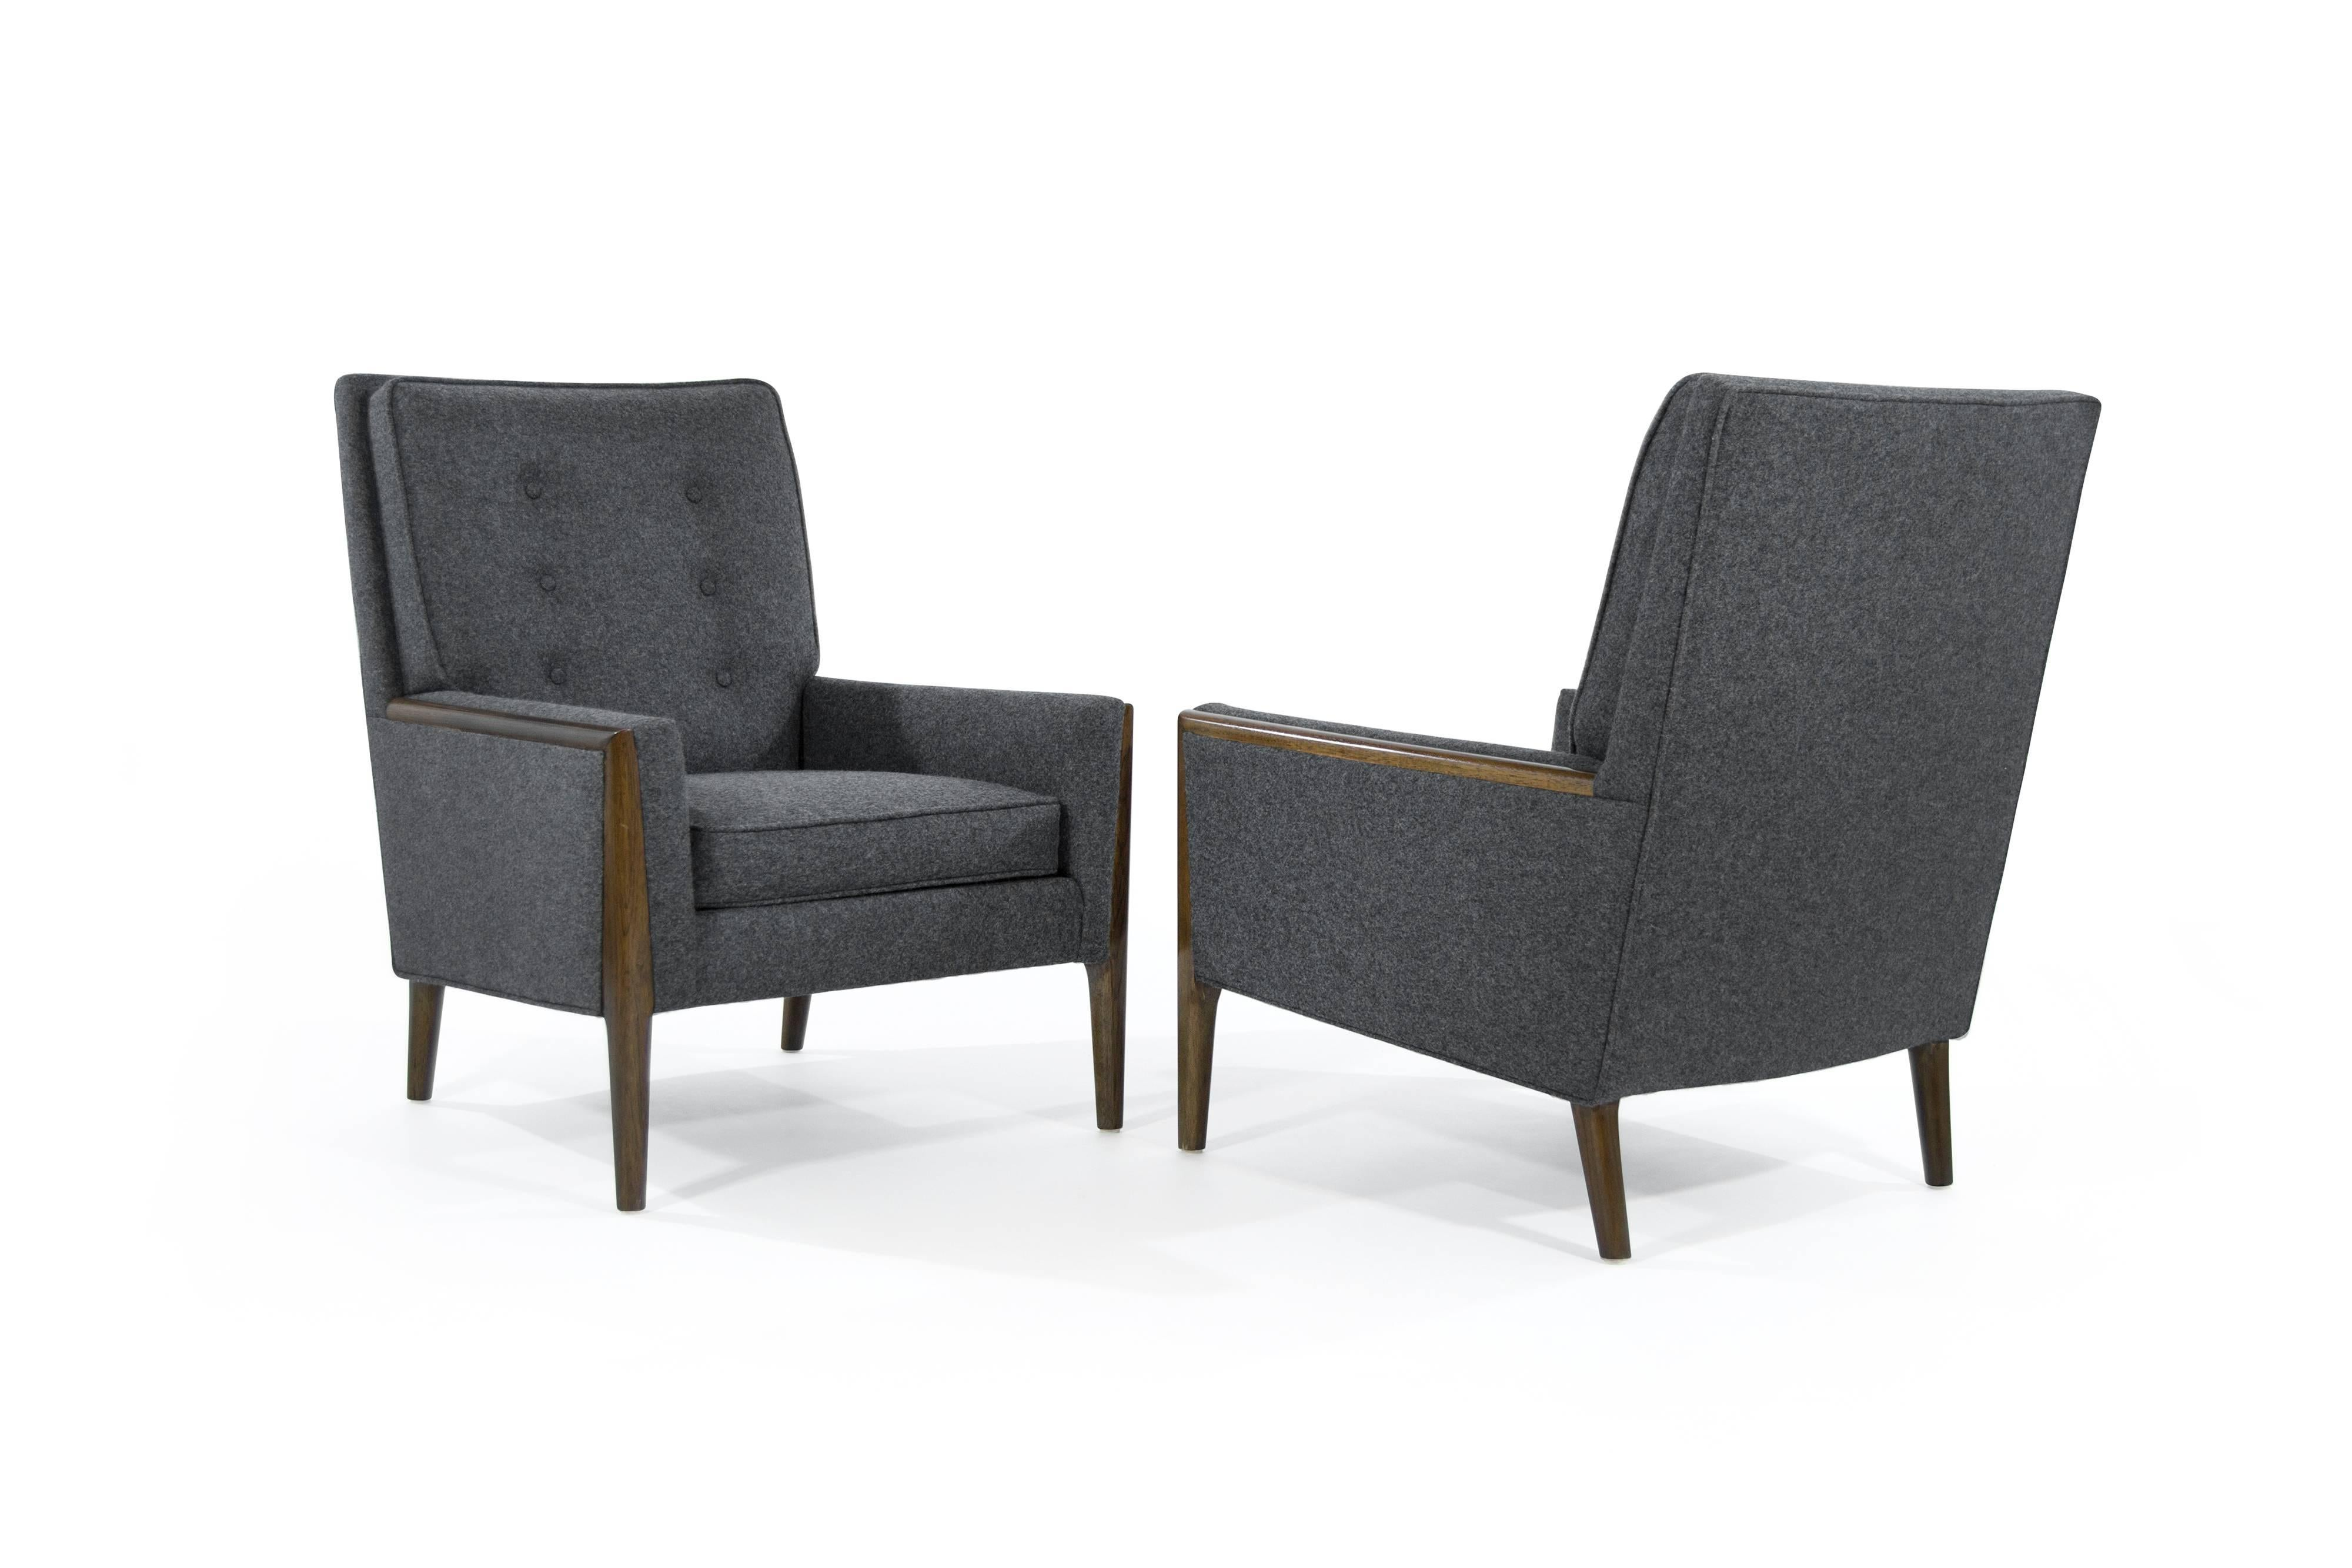 Mid Century Modern High Back Lounge Chairs In Grey Wool